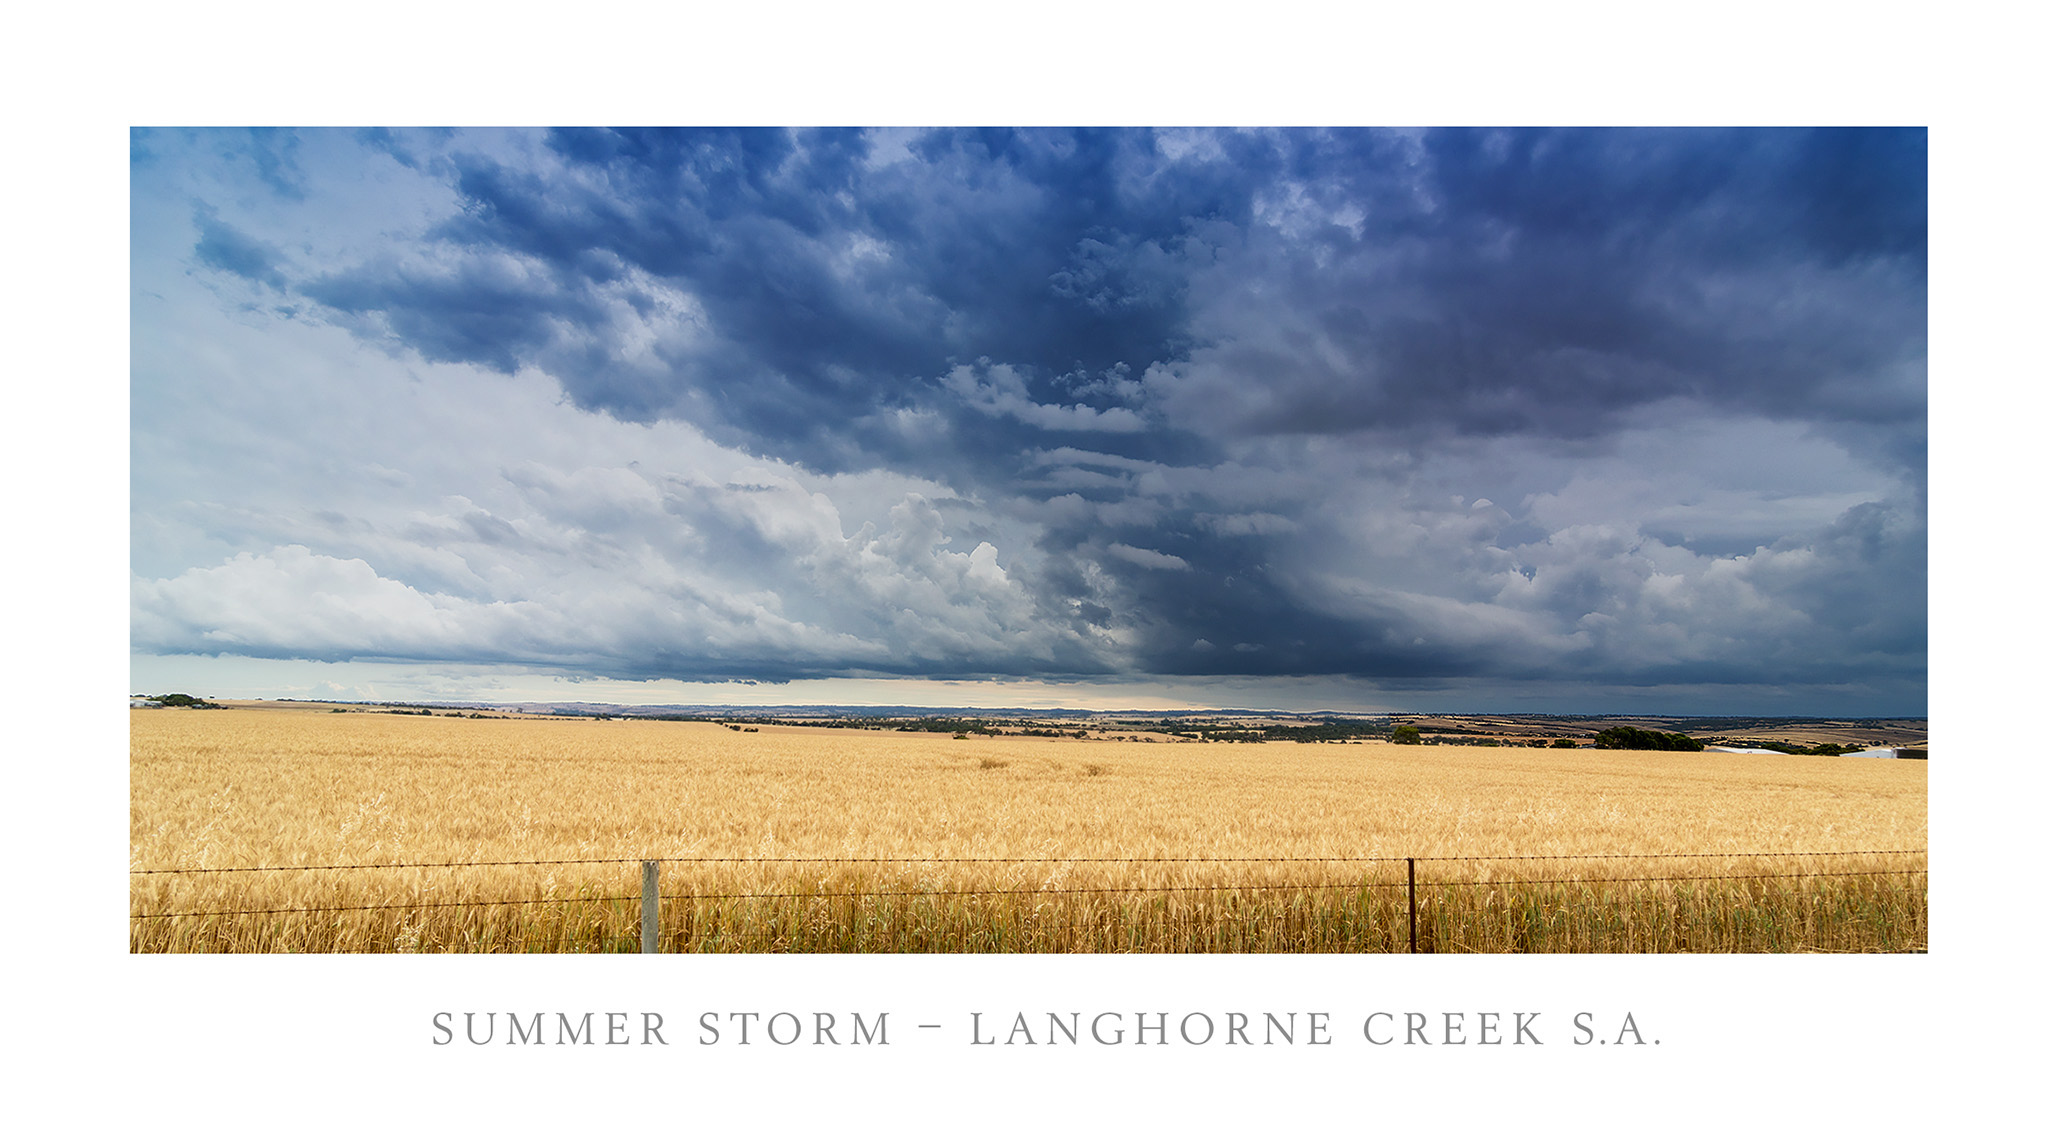 Summer Storm Langhorne Creek